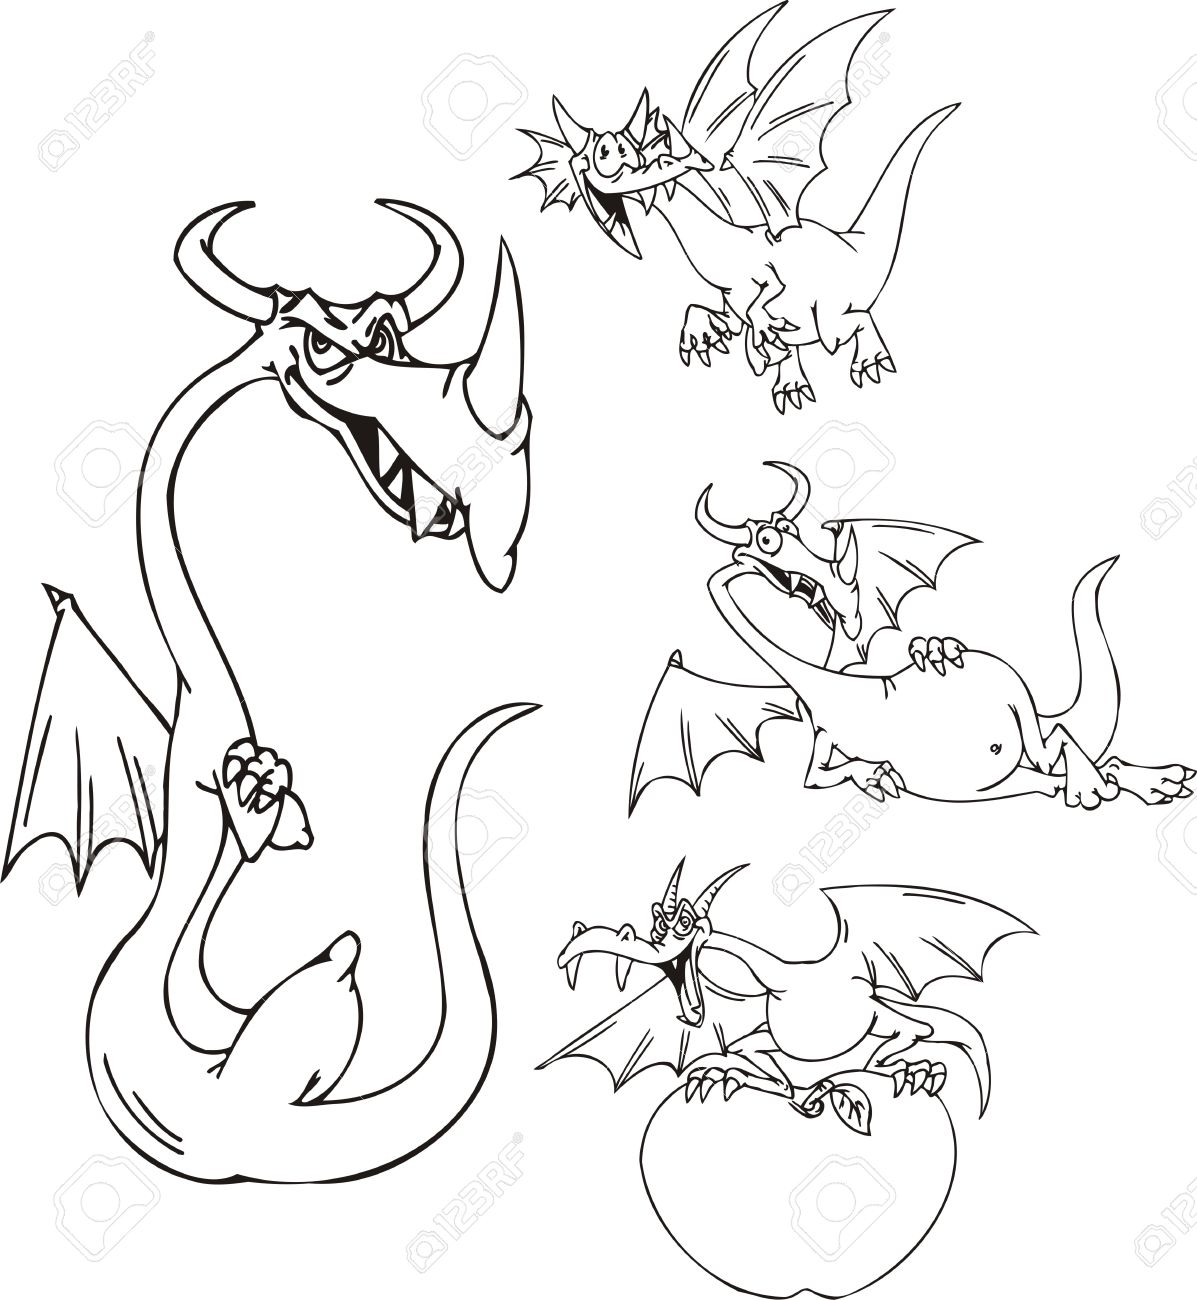 Thin dragon, dragon with the big apple, a big-bellied dragon. Funny dragons.   illustration ready for vinyl cutting. Stock Vector - 8570829